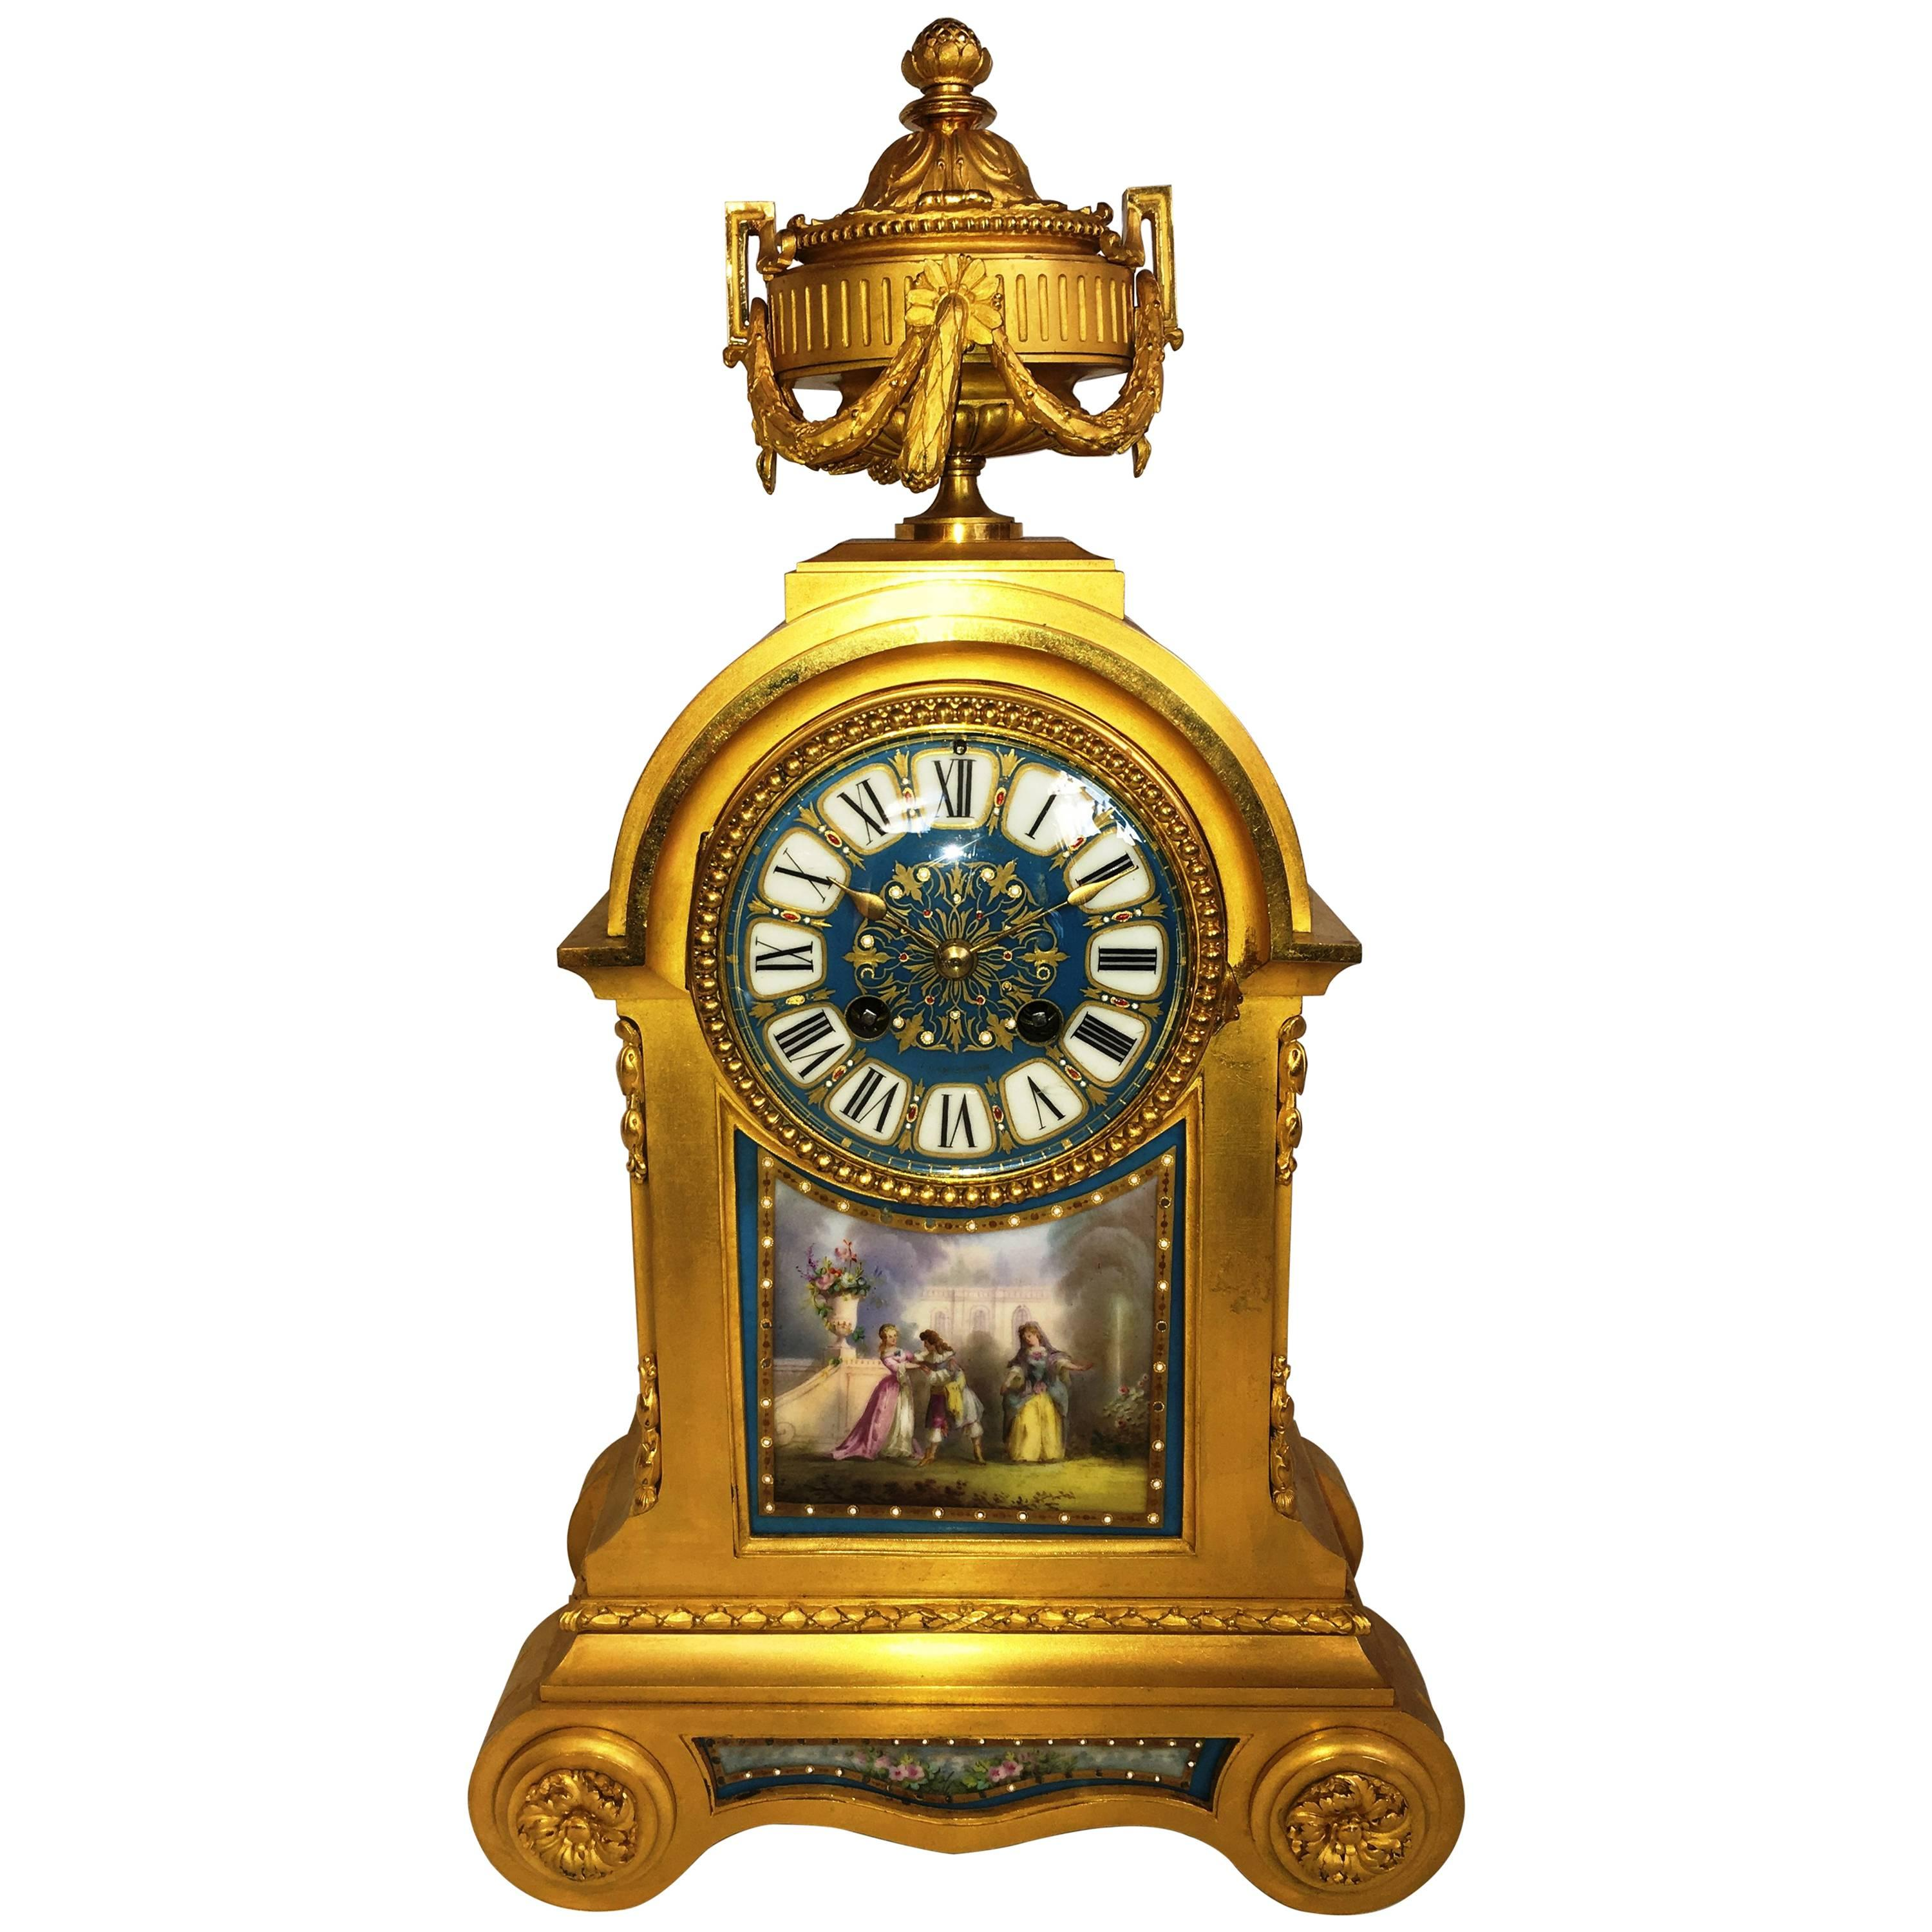 French Louis XVI Style Mantel Clock, 19th Century